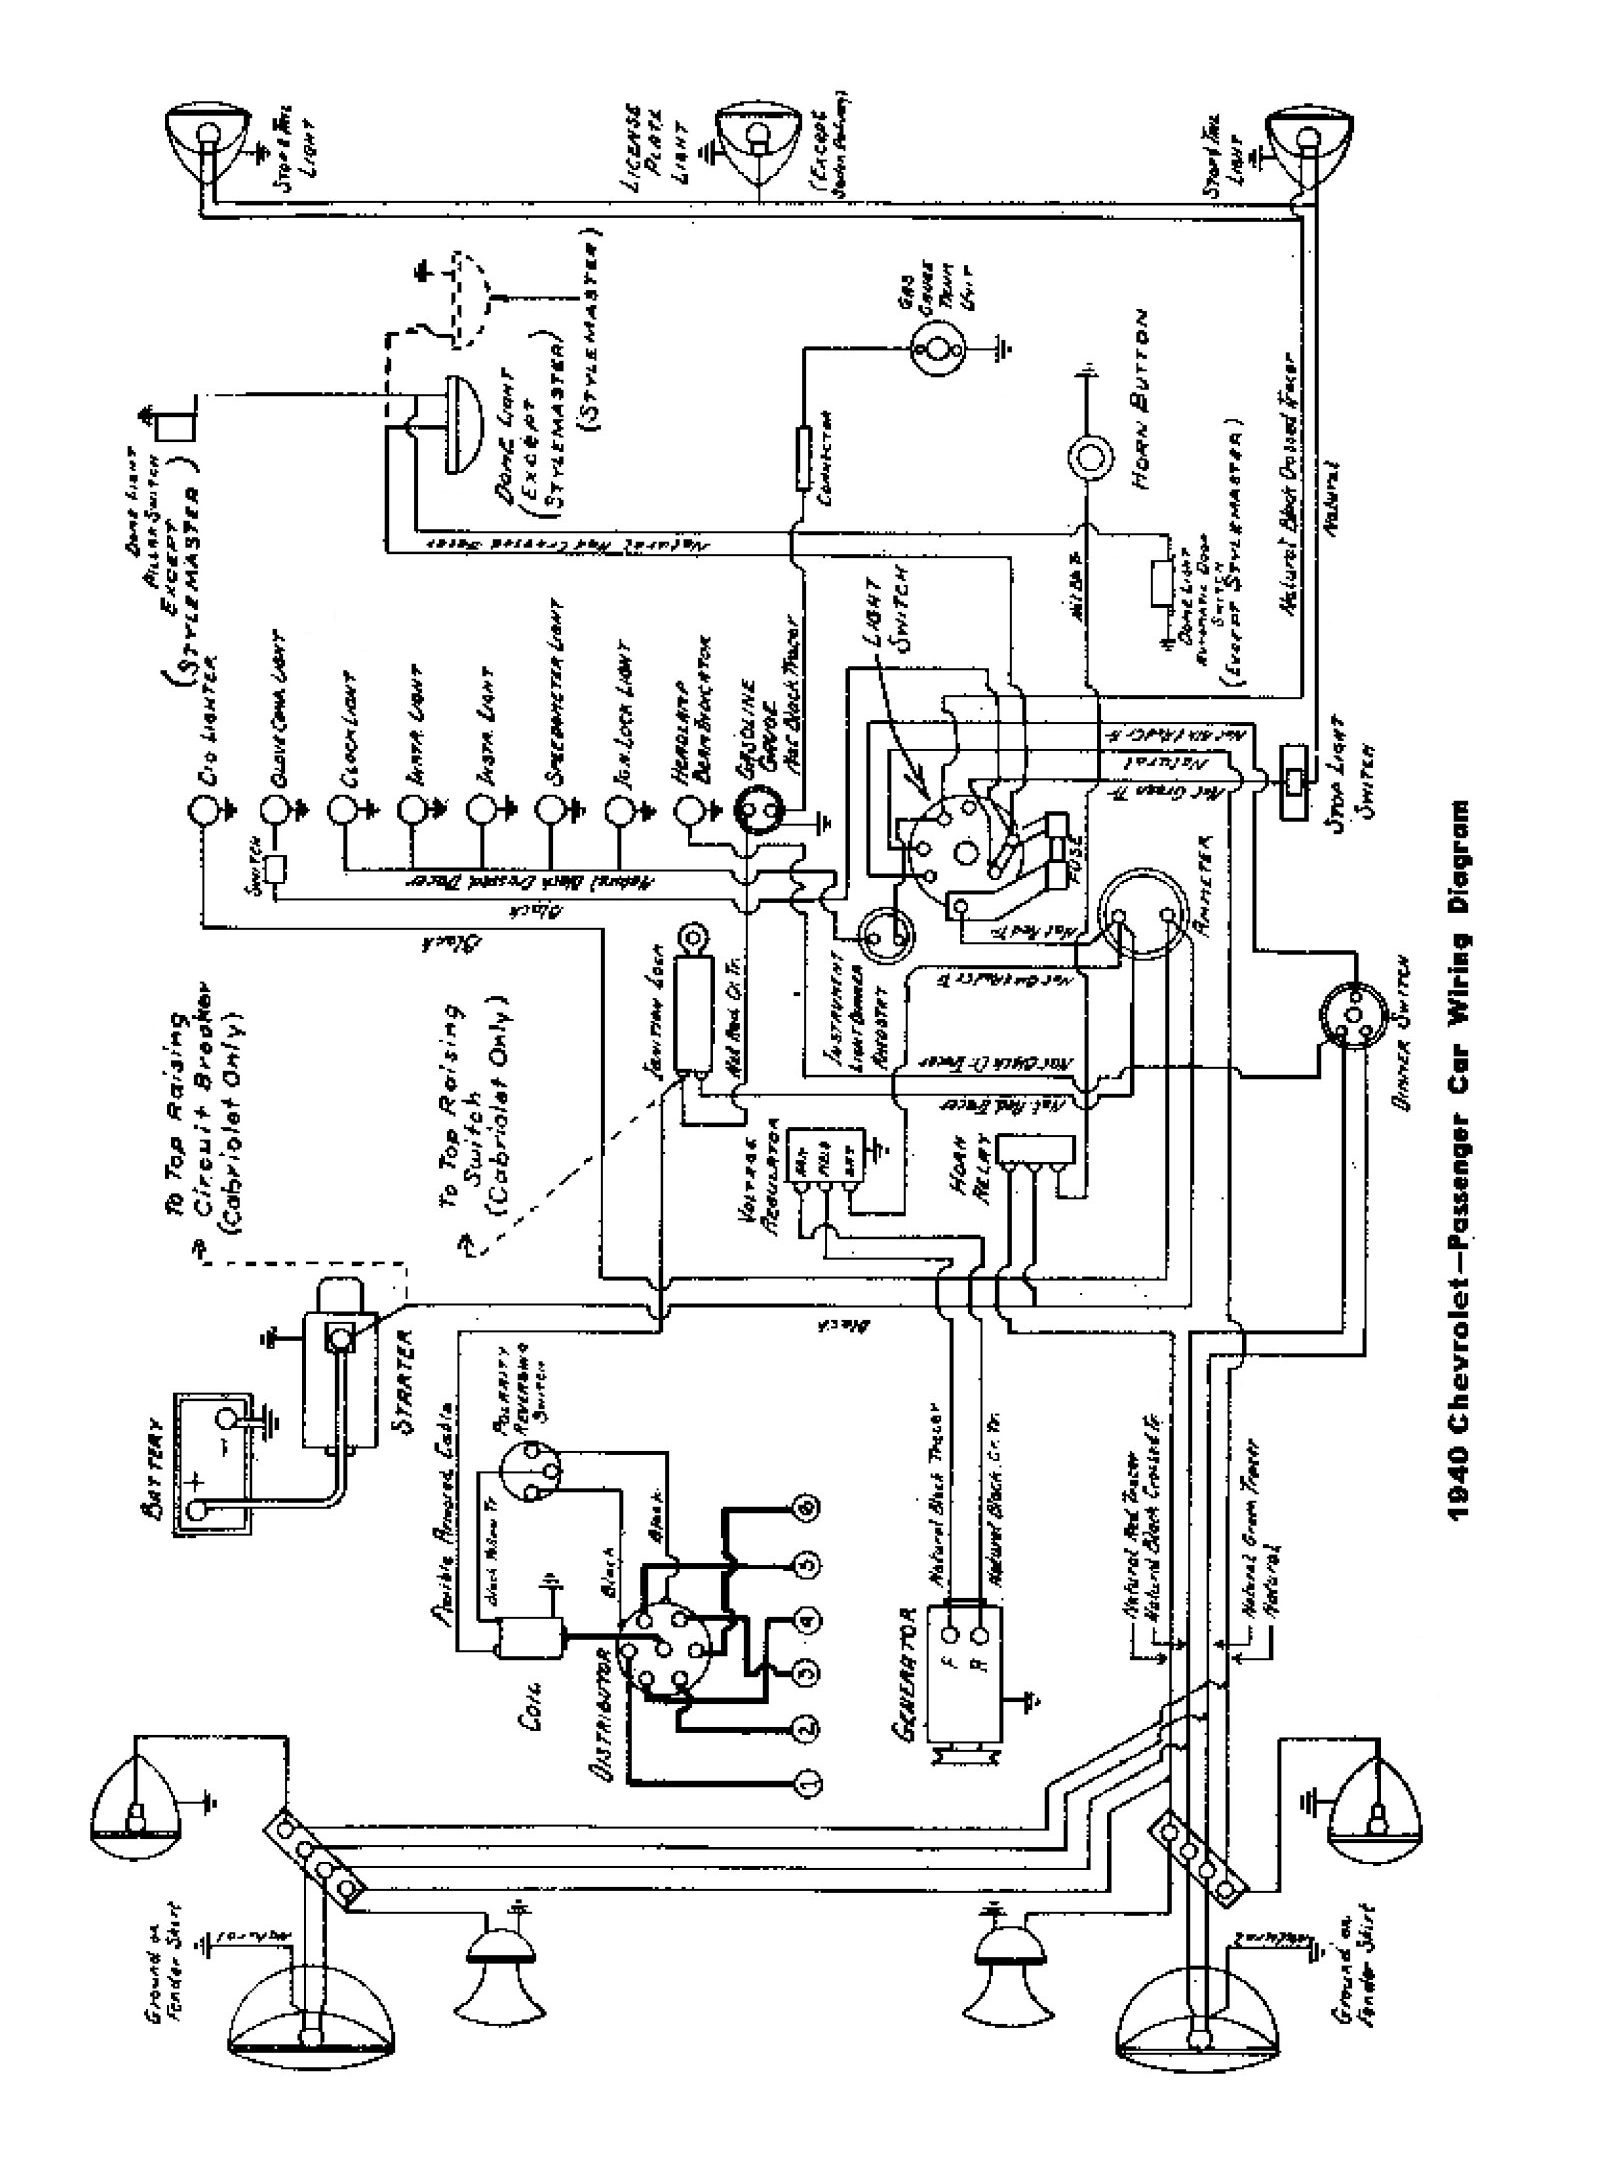 hight resolution of 1952 international engine diagram wiring diagram third level1952 international truck wiring diagram schematic wiring diagram ford